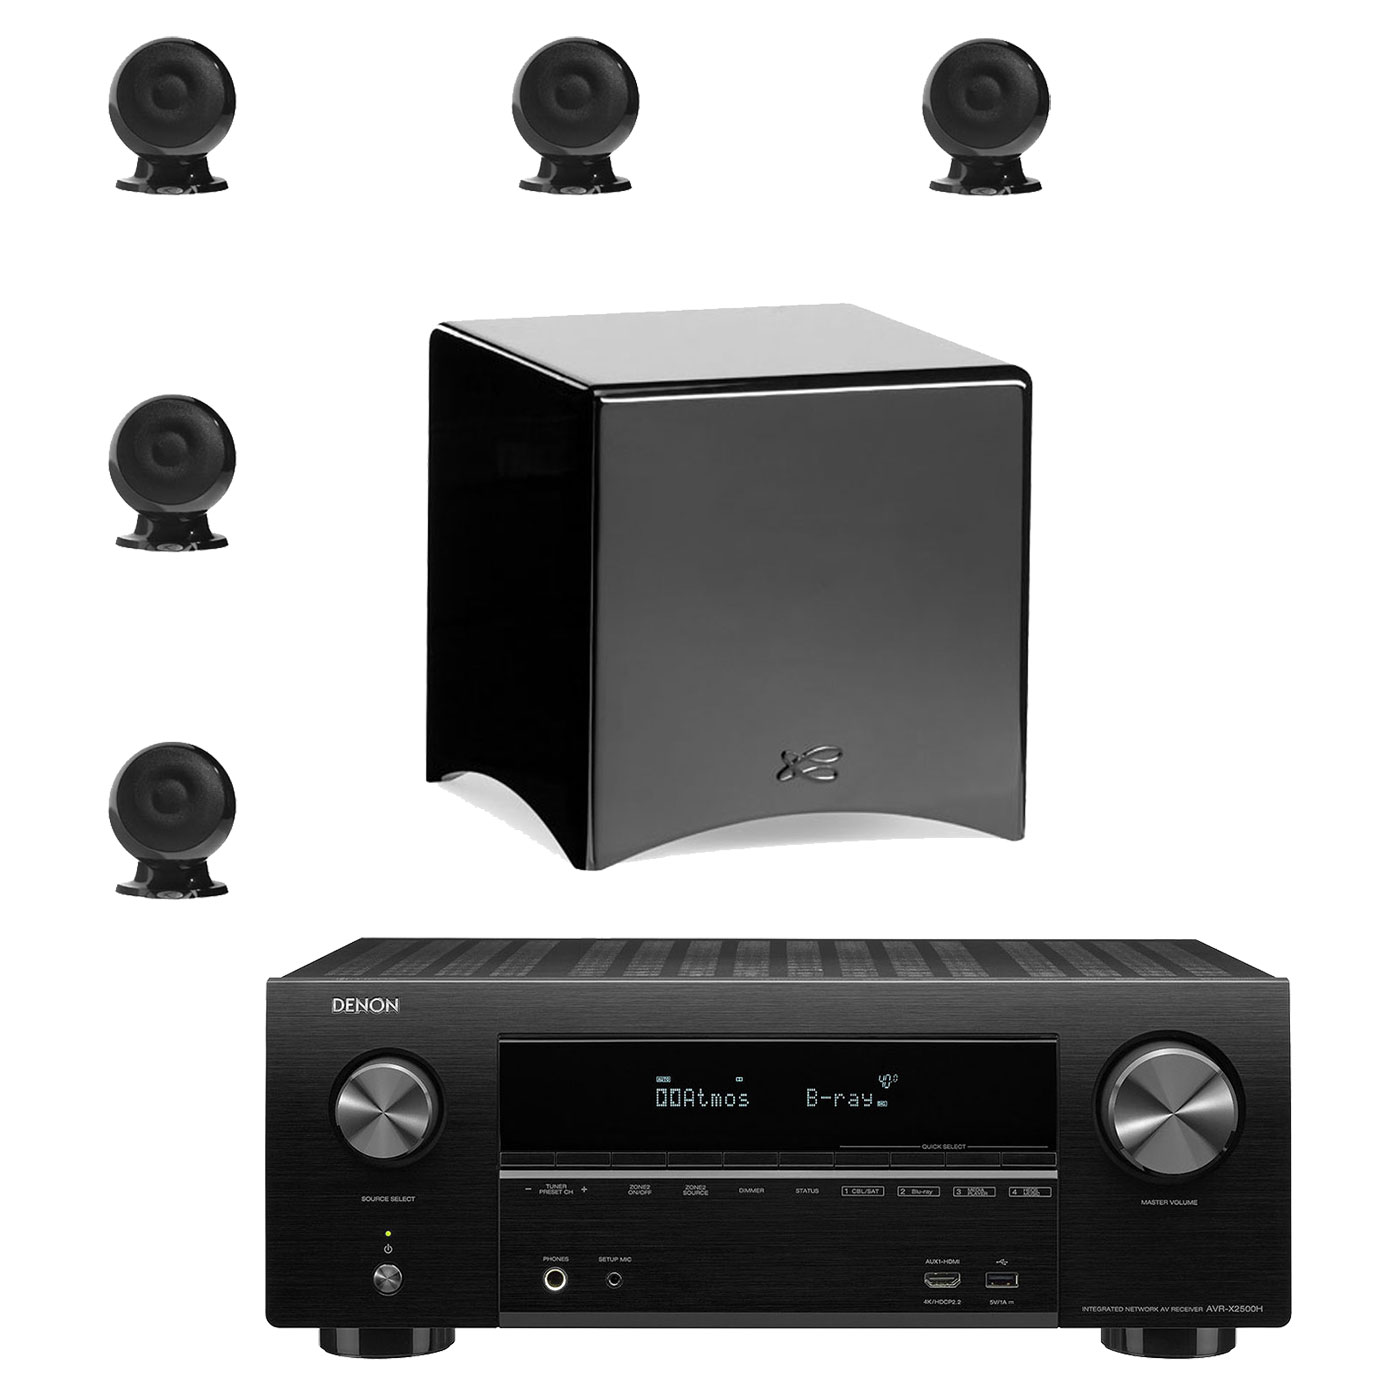 Ensemble home cinéma Denon AVR-X2500H Noir + Cabasse pack Eole 3 5.1 WS Noir Ampli-tuner Home Cinema 3D Ready 7.2 - Dolby Atmos / DTS:X - 8x HDMI 4K Ultra HD, HDCP 2.2, HDR - Wi-Fi, Bluetooth, AirPlay 2 - Multiroom - Amazon Alexa + Pack d'enceintes 5.1